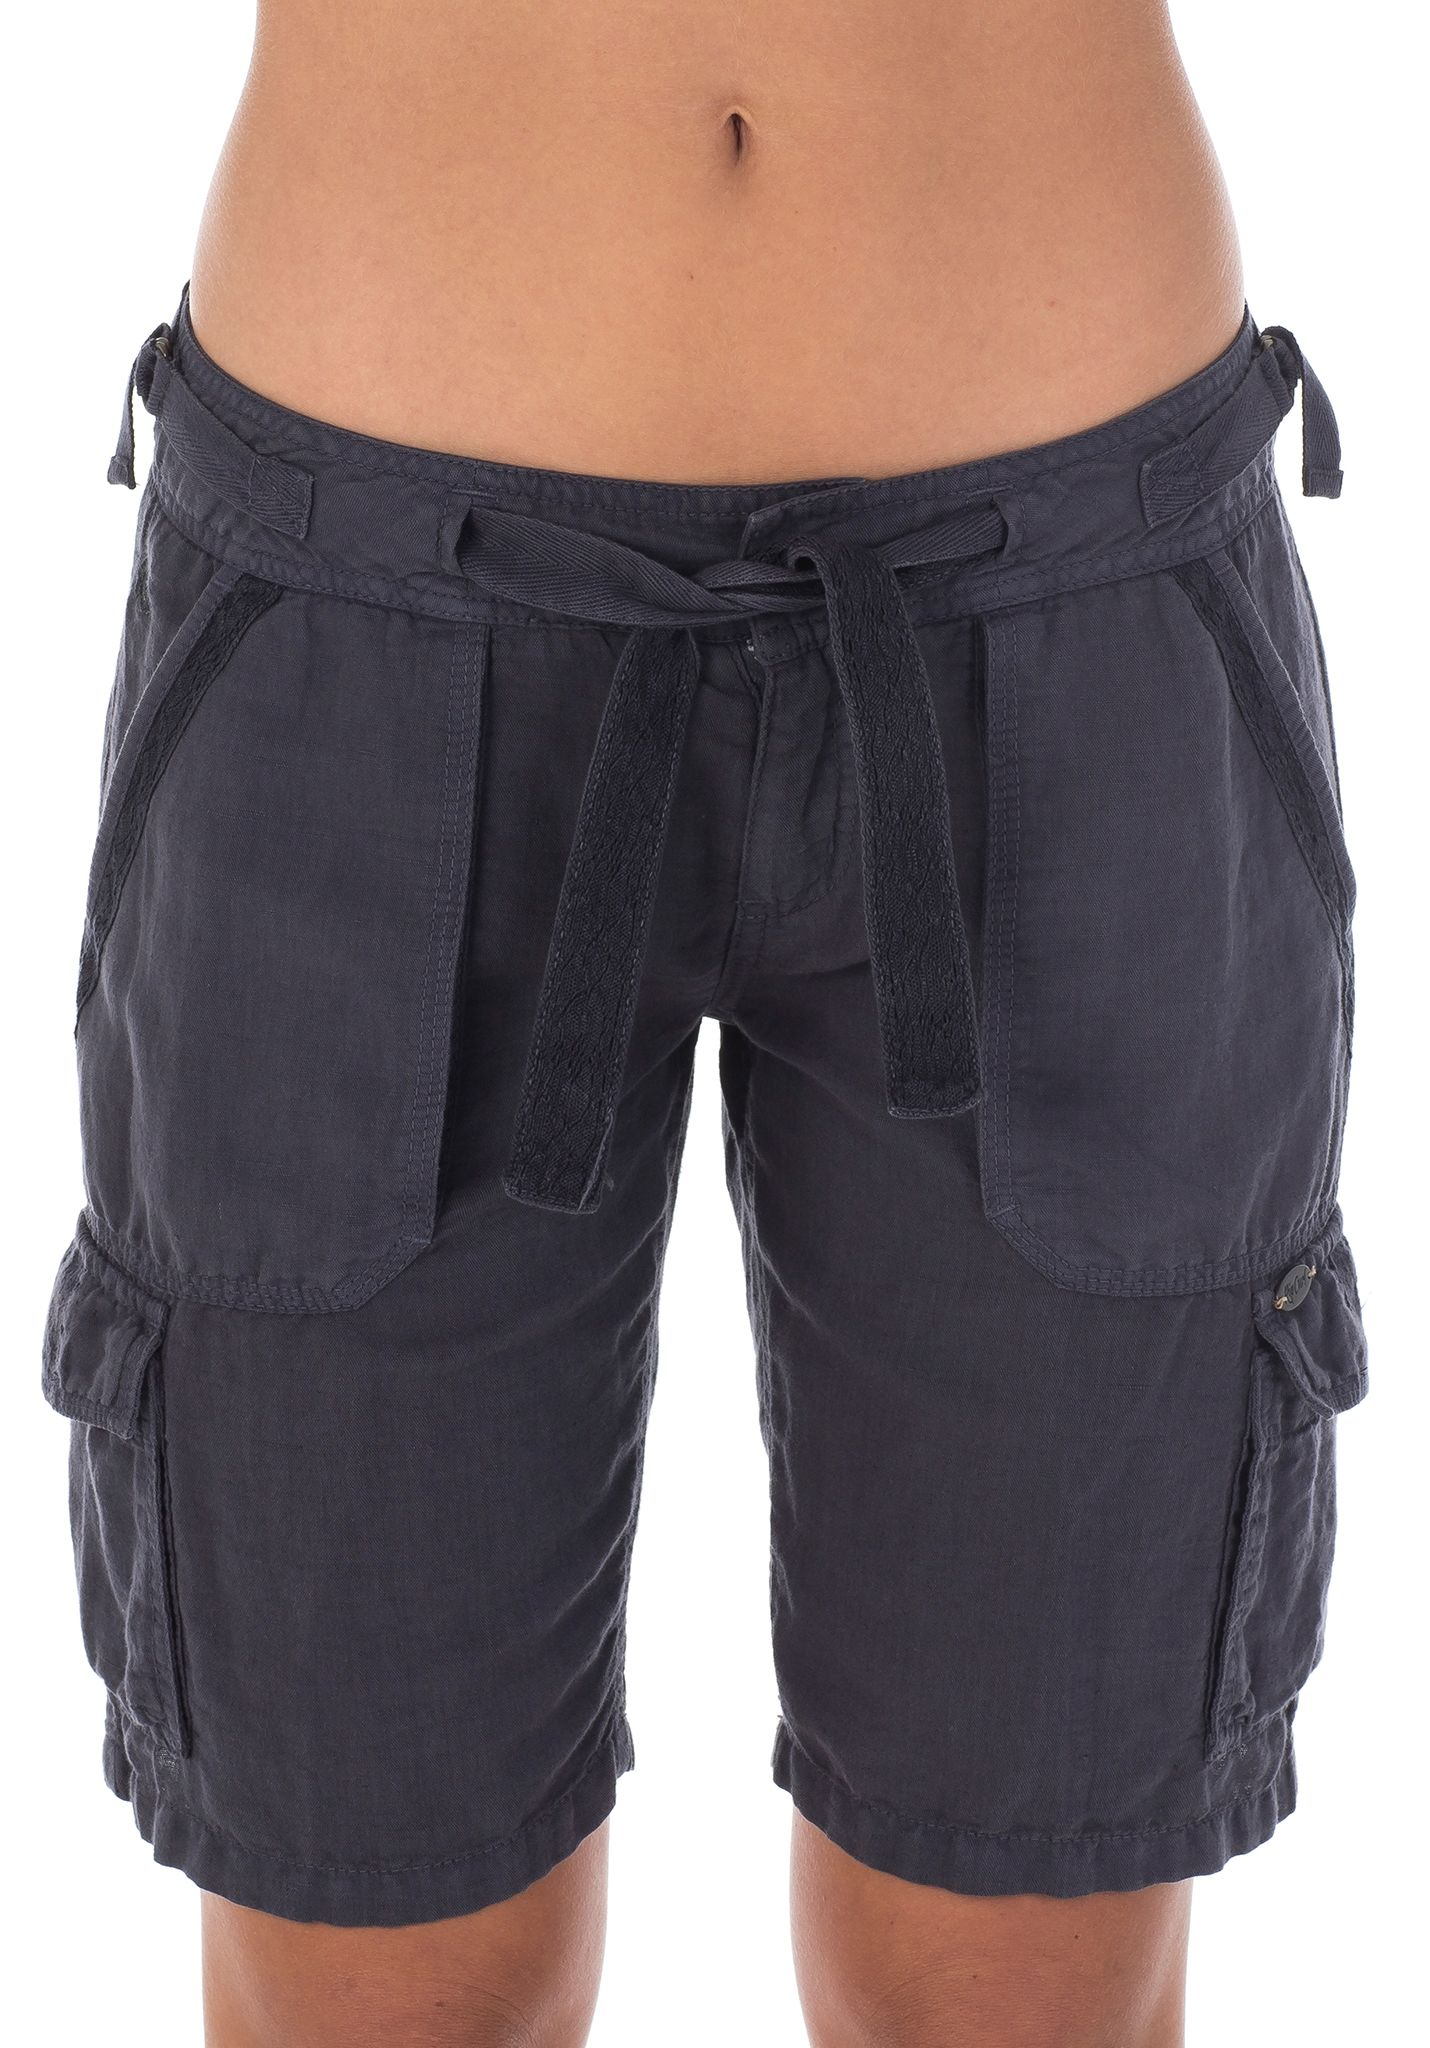 Womens Dean Shorts Rip Curl Genuine Cheap Price Free Shipping Pre Order Free Shipping Footlocker Pictures Outlet Footaction Free Shipping Nicekicks wSISCXxK